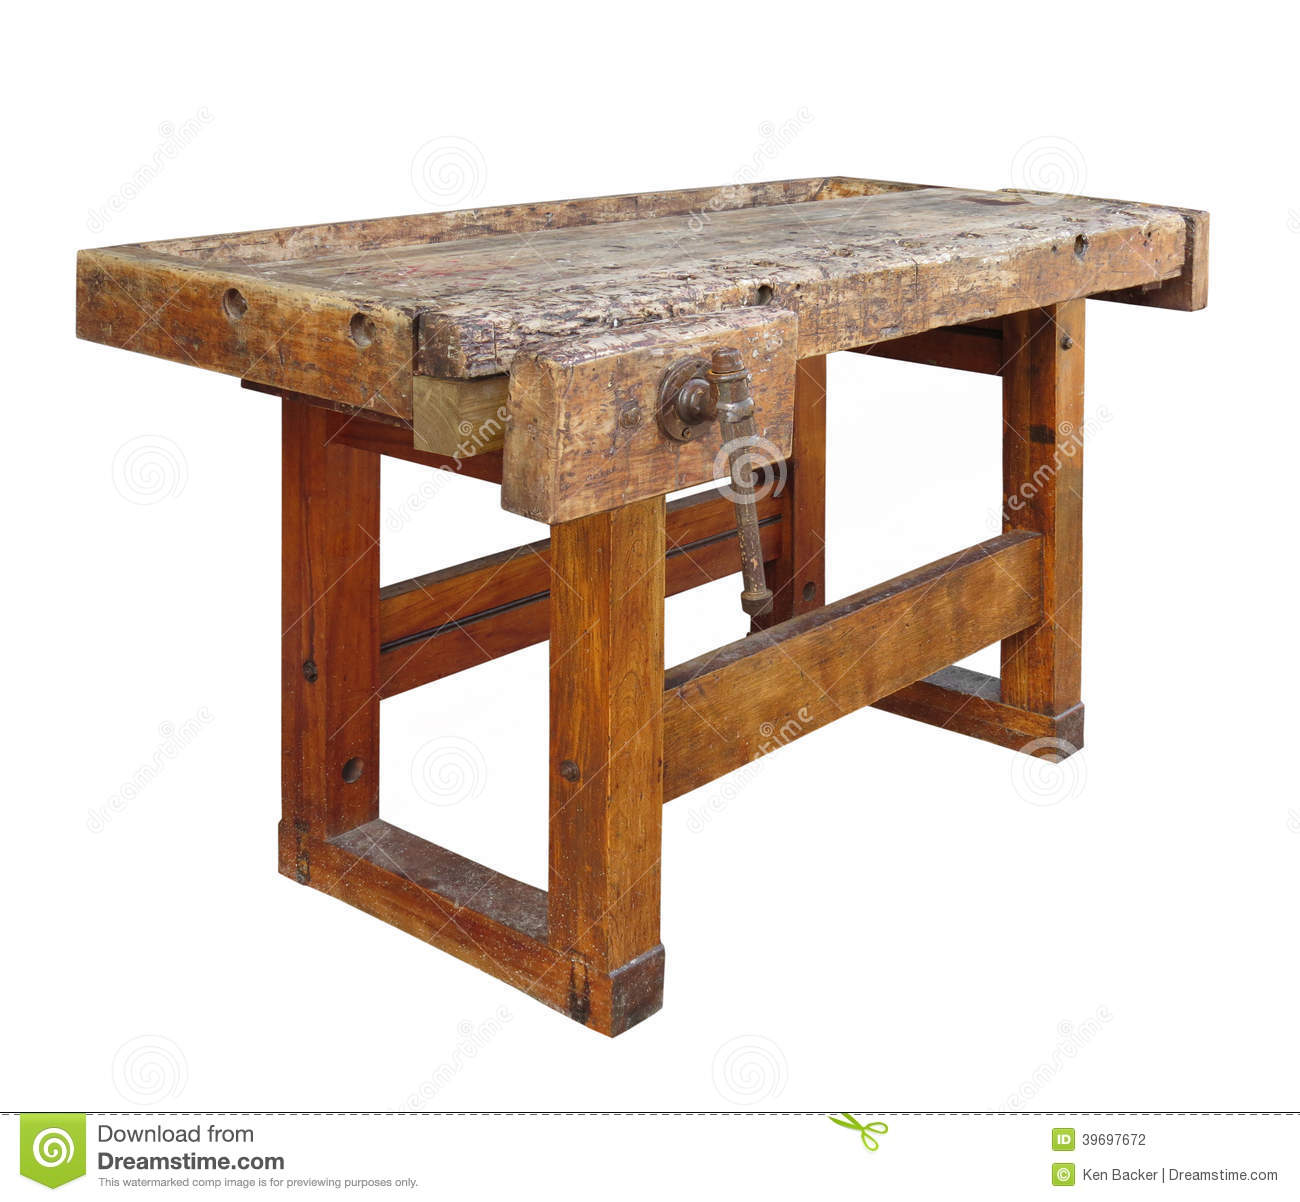 ... workbenches antique used large rough legs benches work bench tables